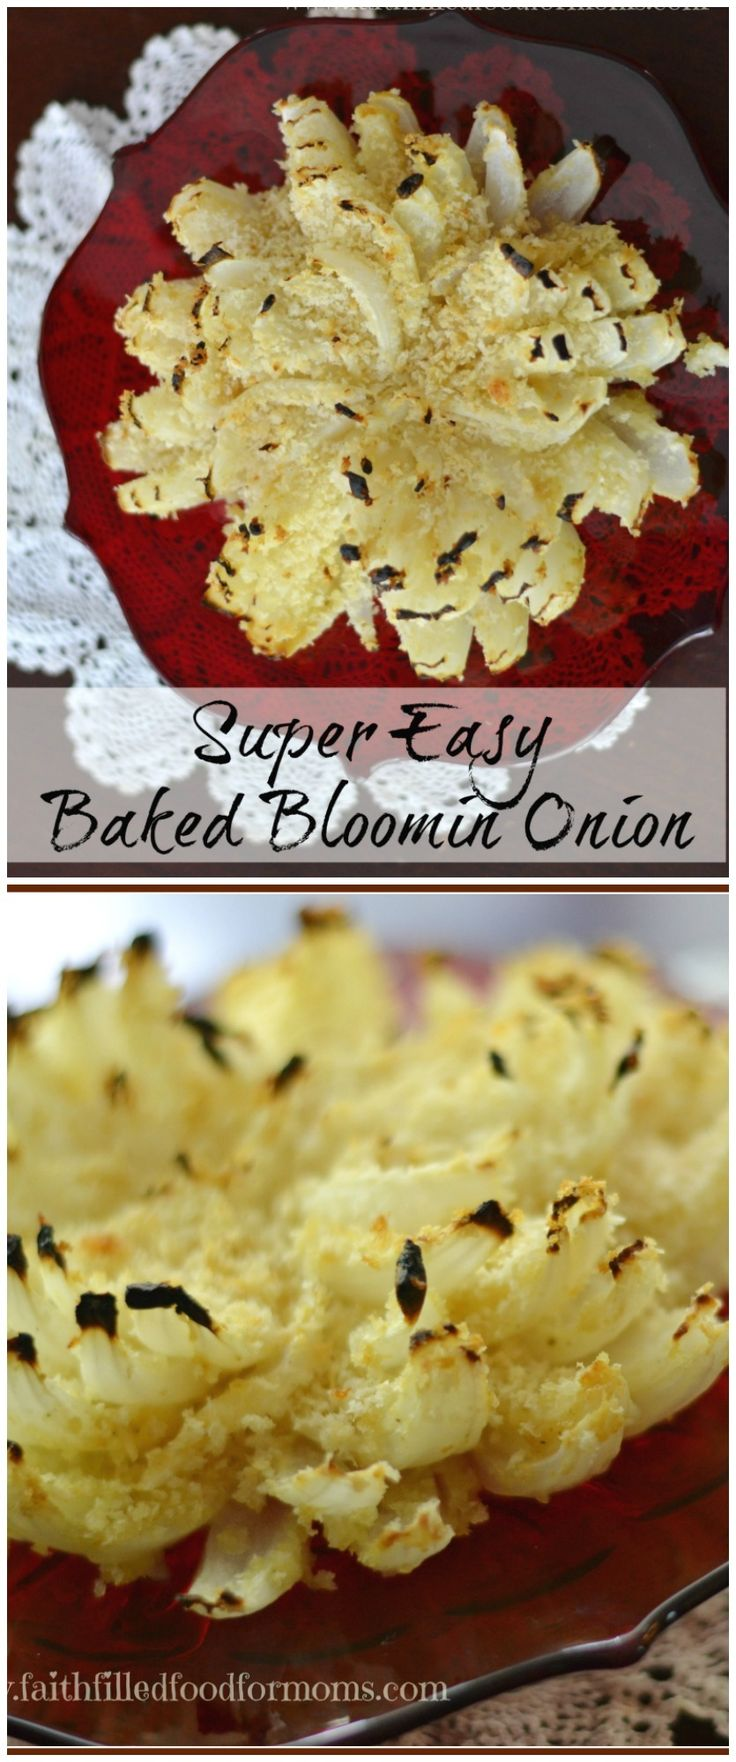 This Easy, Healthy Baked Bloomin Onion Recipe is simply the BEST! One of my favorite appetizers that can even be prepared ahead of time! It is delicious! Can also be made Gluten Free #Appetizers #appetizer #easy #recipes #faithfilledfoodformoms